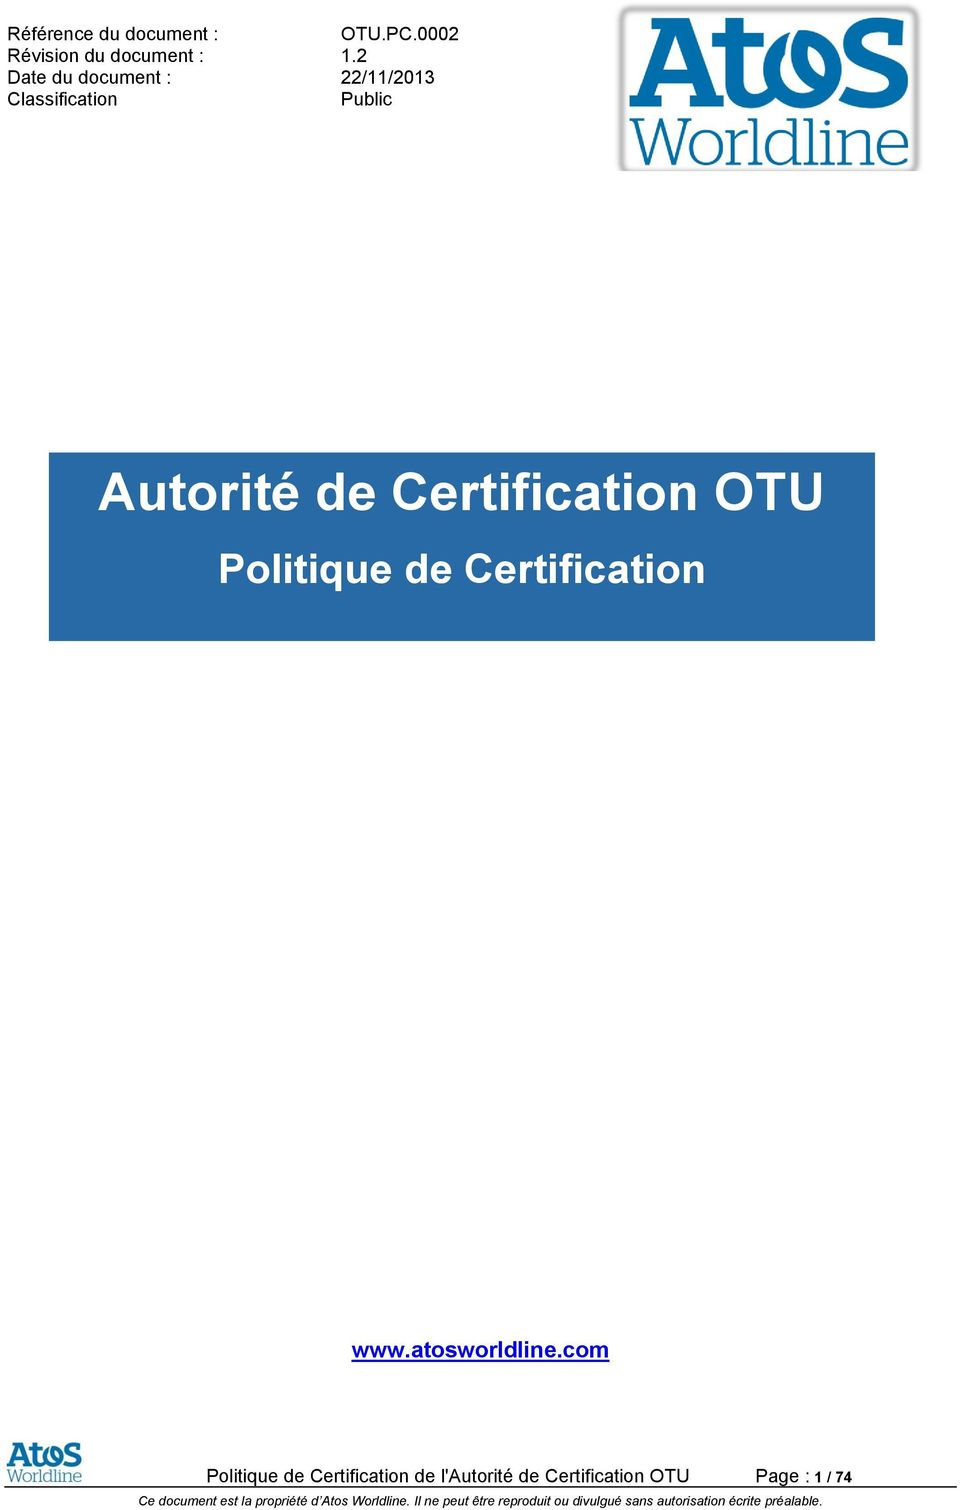 Certification www.atosworldline.